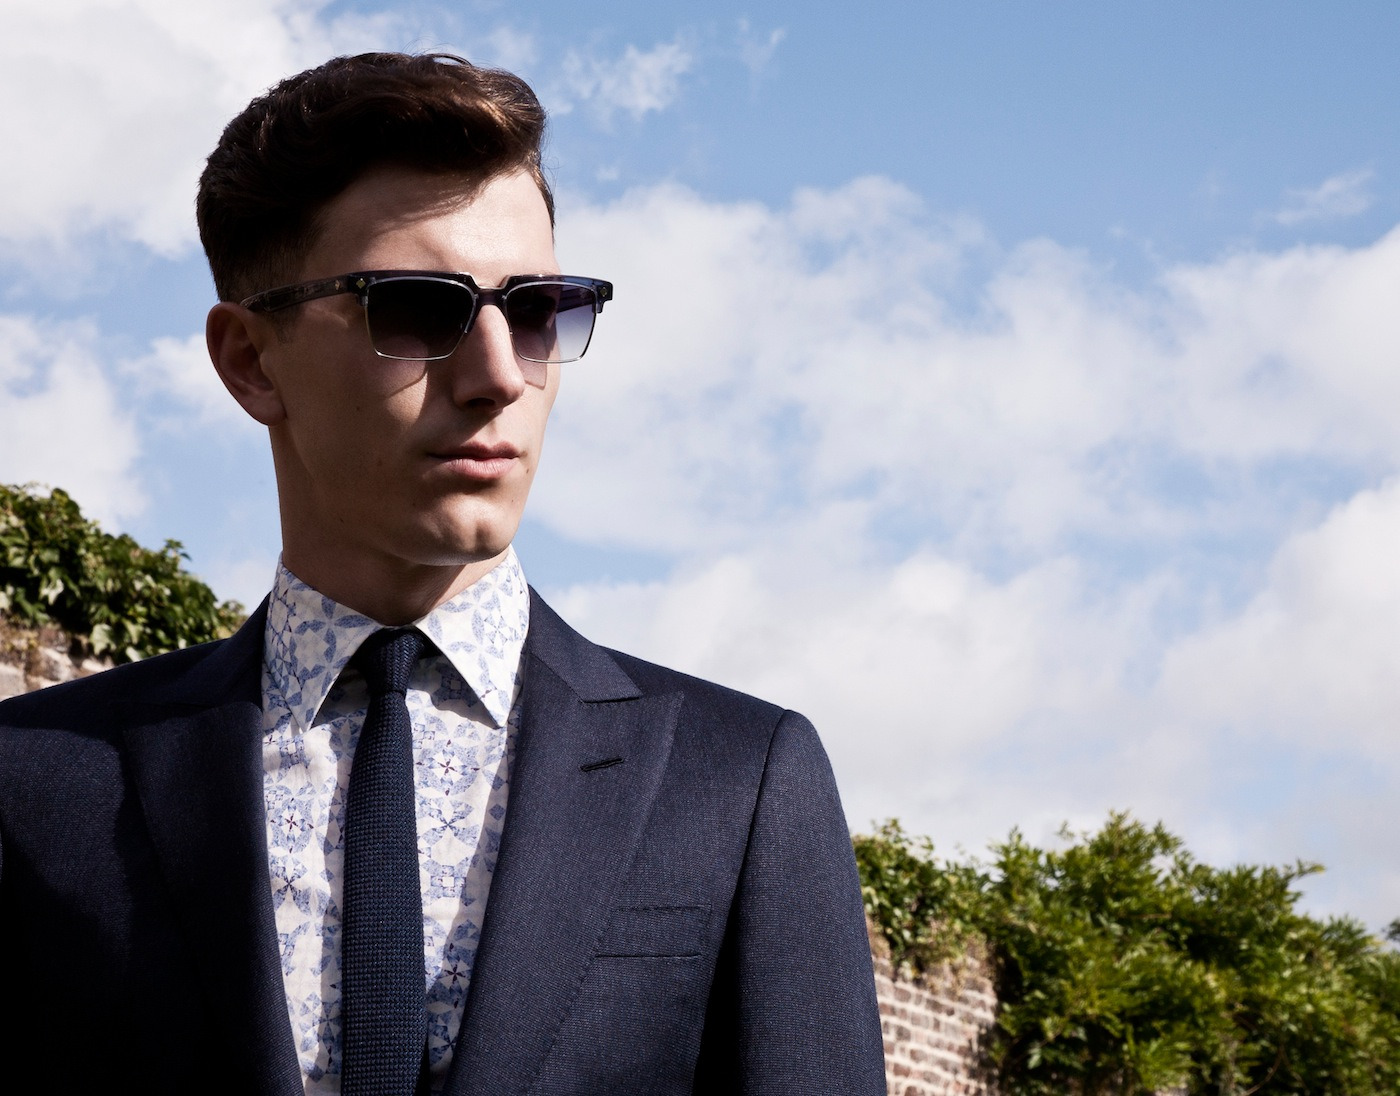 Hardy Amies Launches Sunglasses Collection